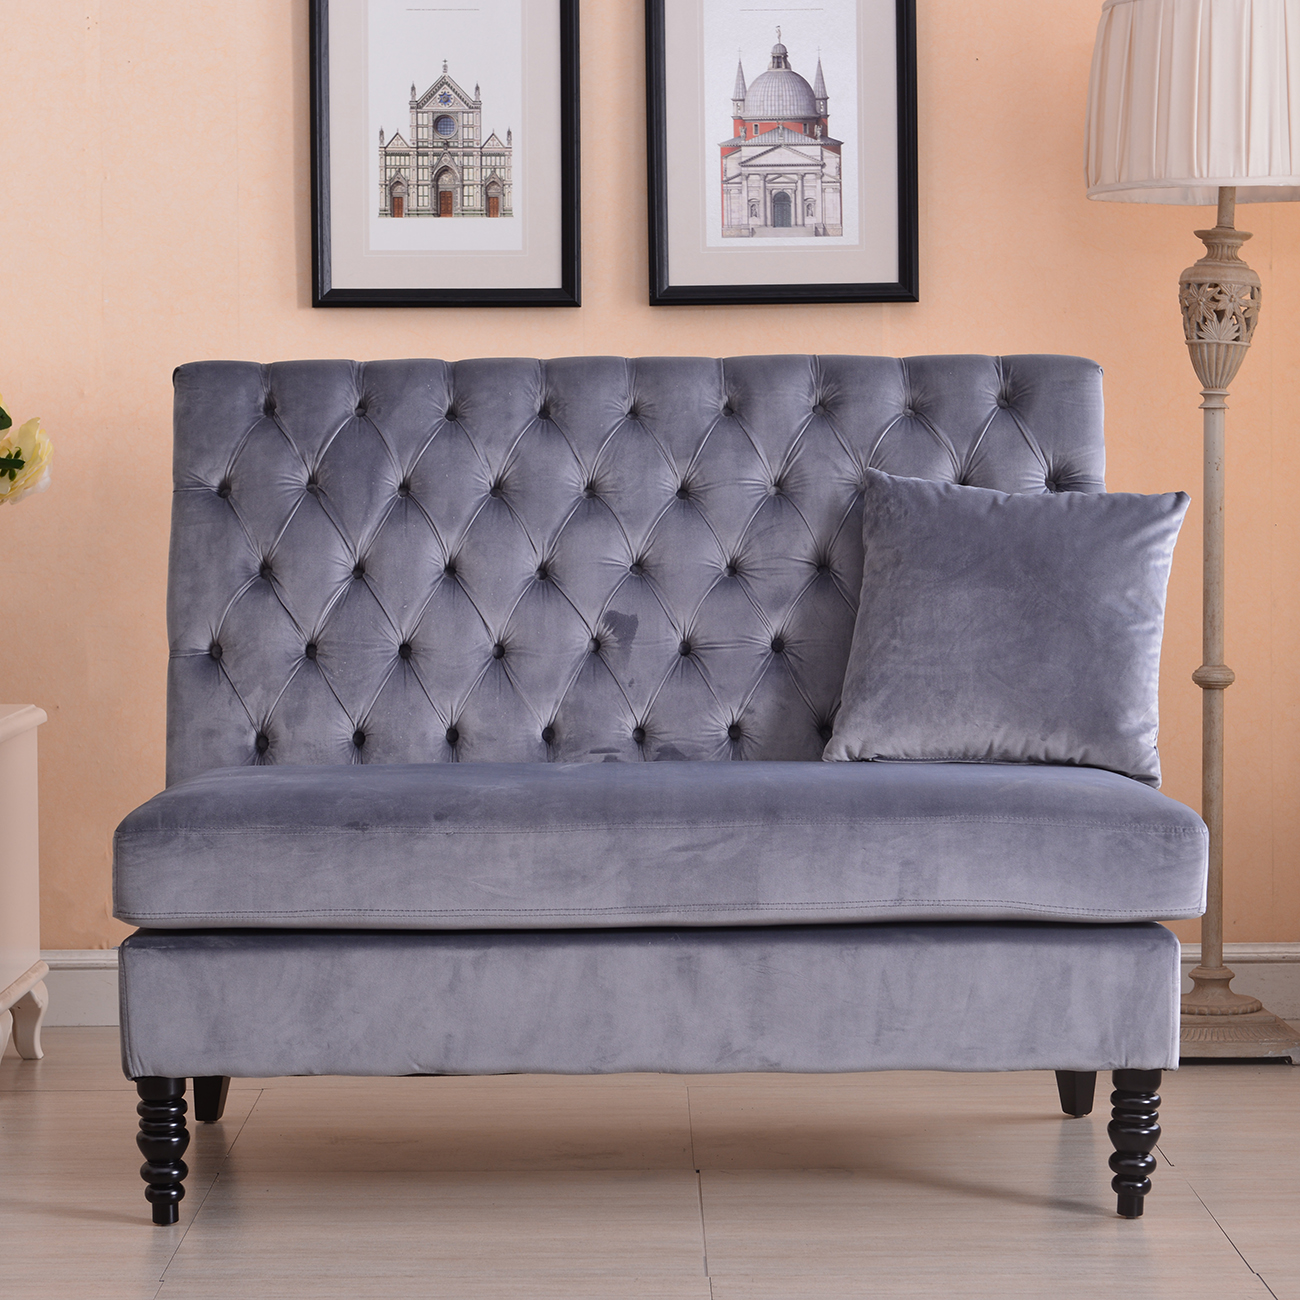 New Modern Tufted Settee Bedroom Bench Sofa High Back